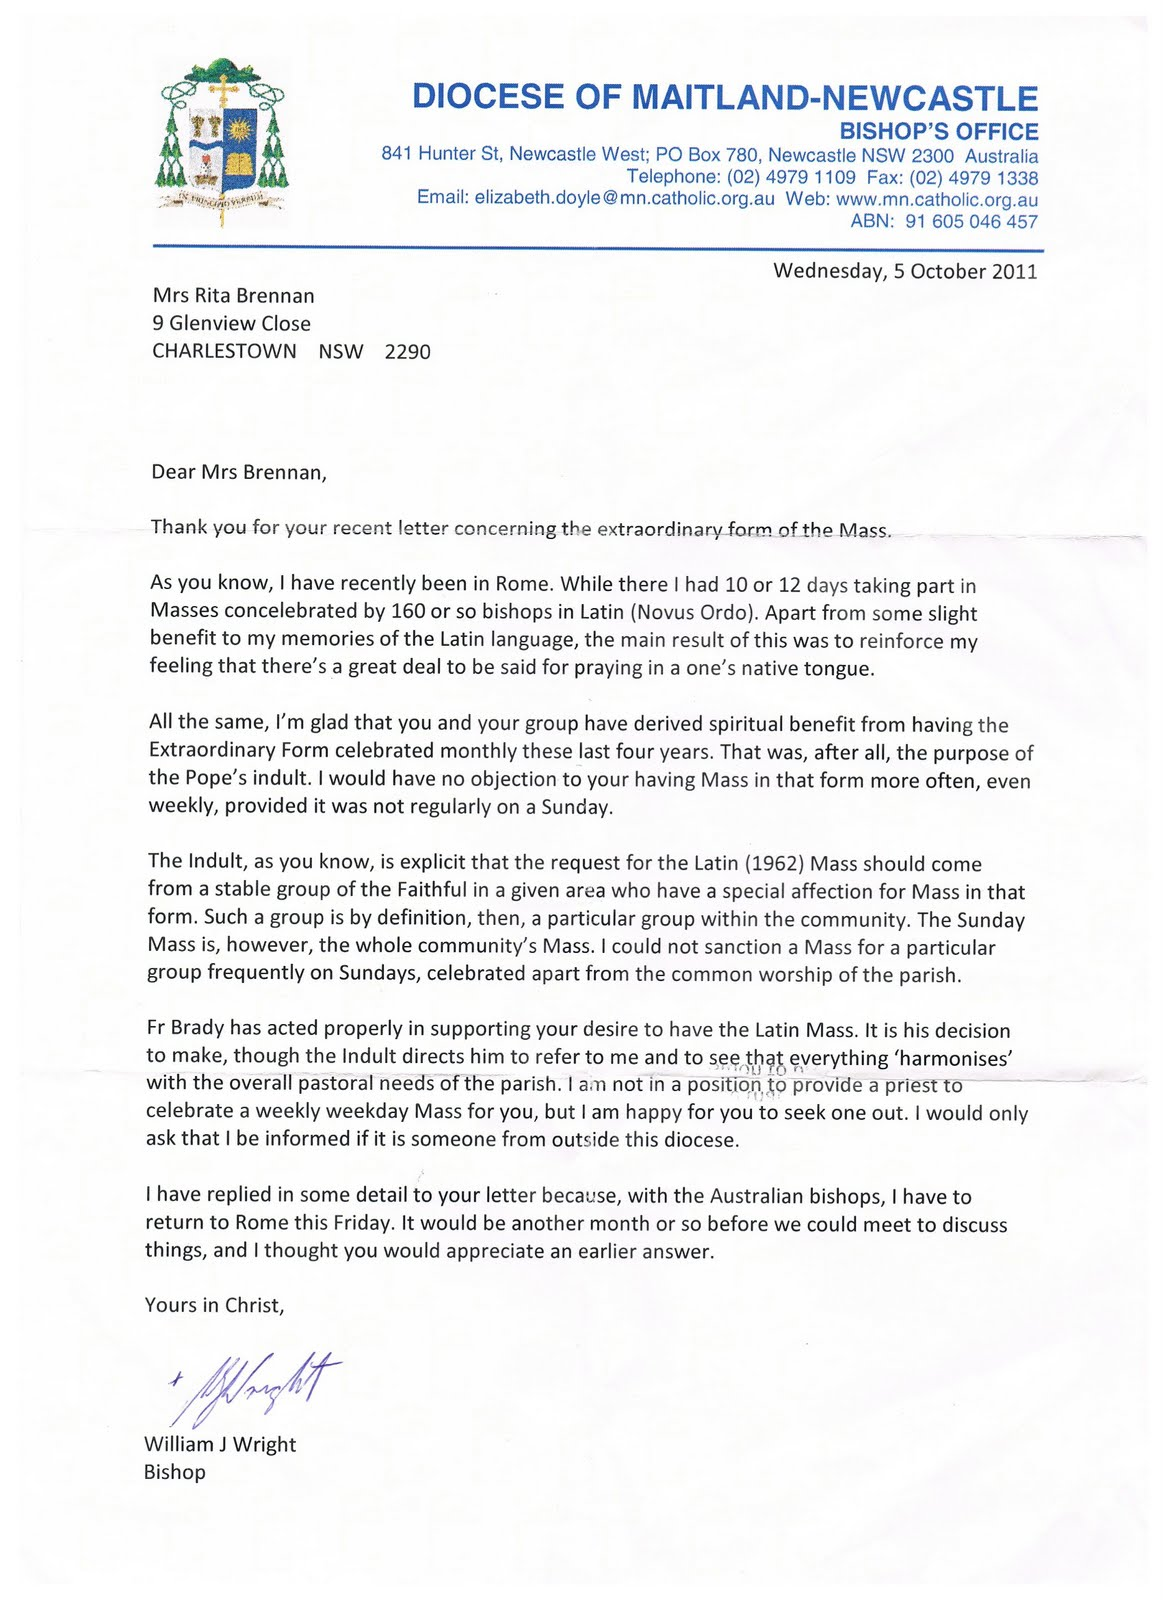 Cover letter in french images cover letter sample how to write a cover letter in french image collections cover how to write a request stopboris Choice Image